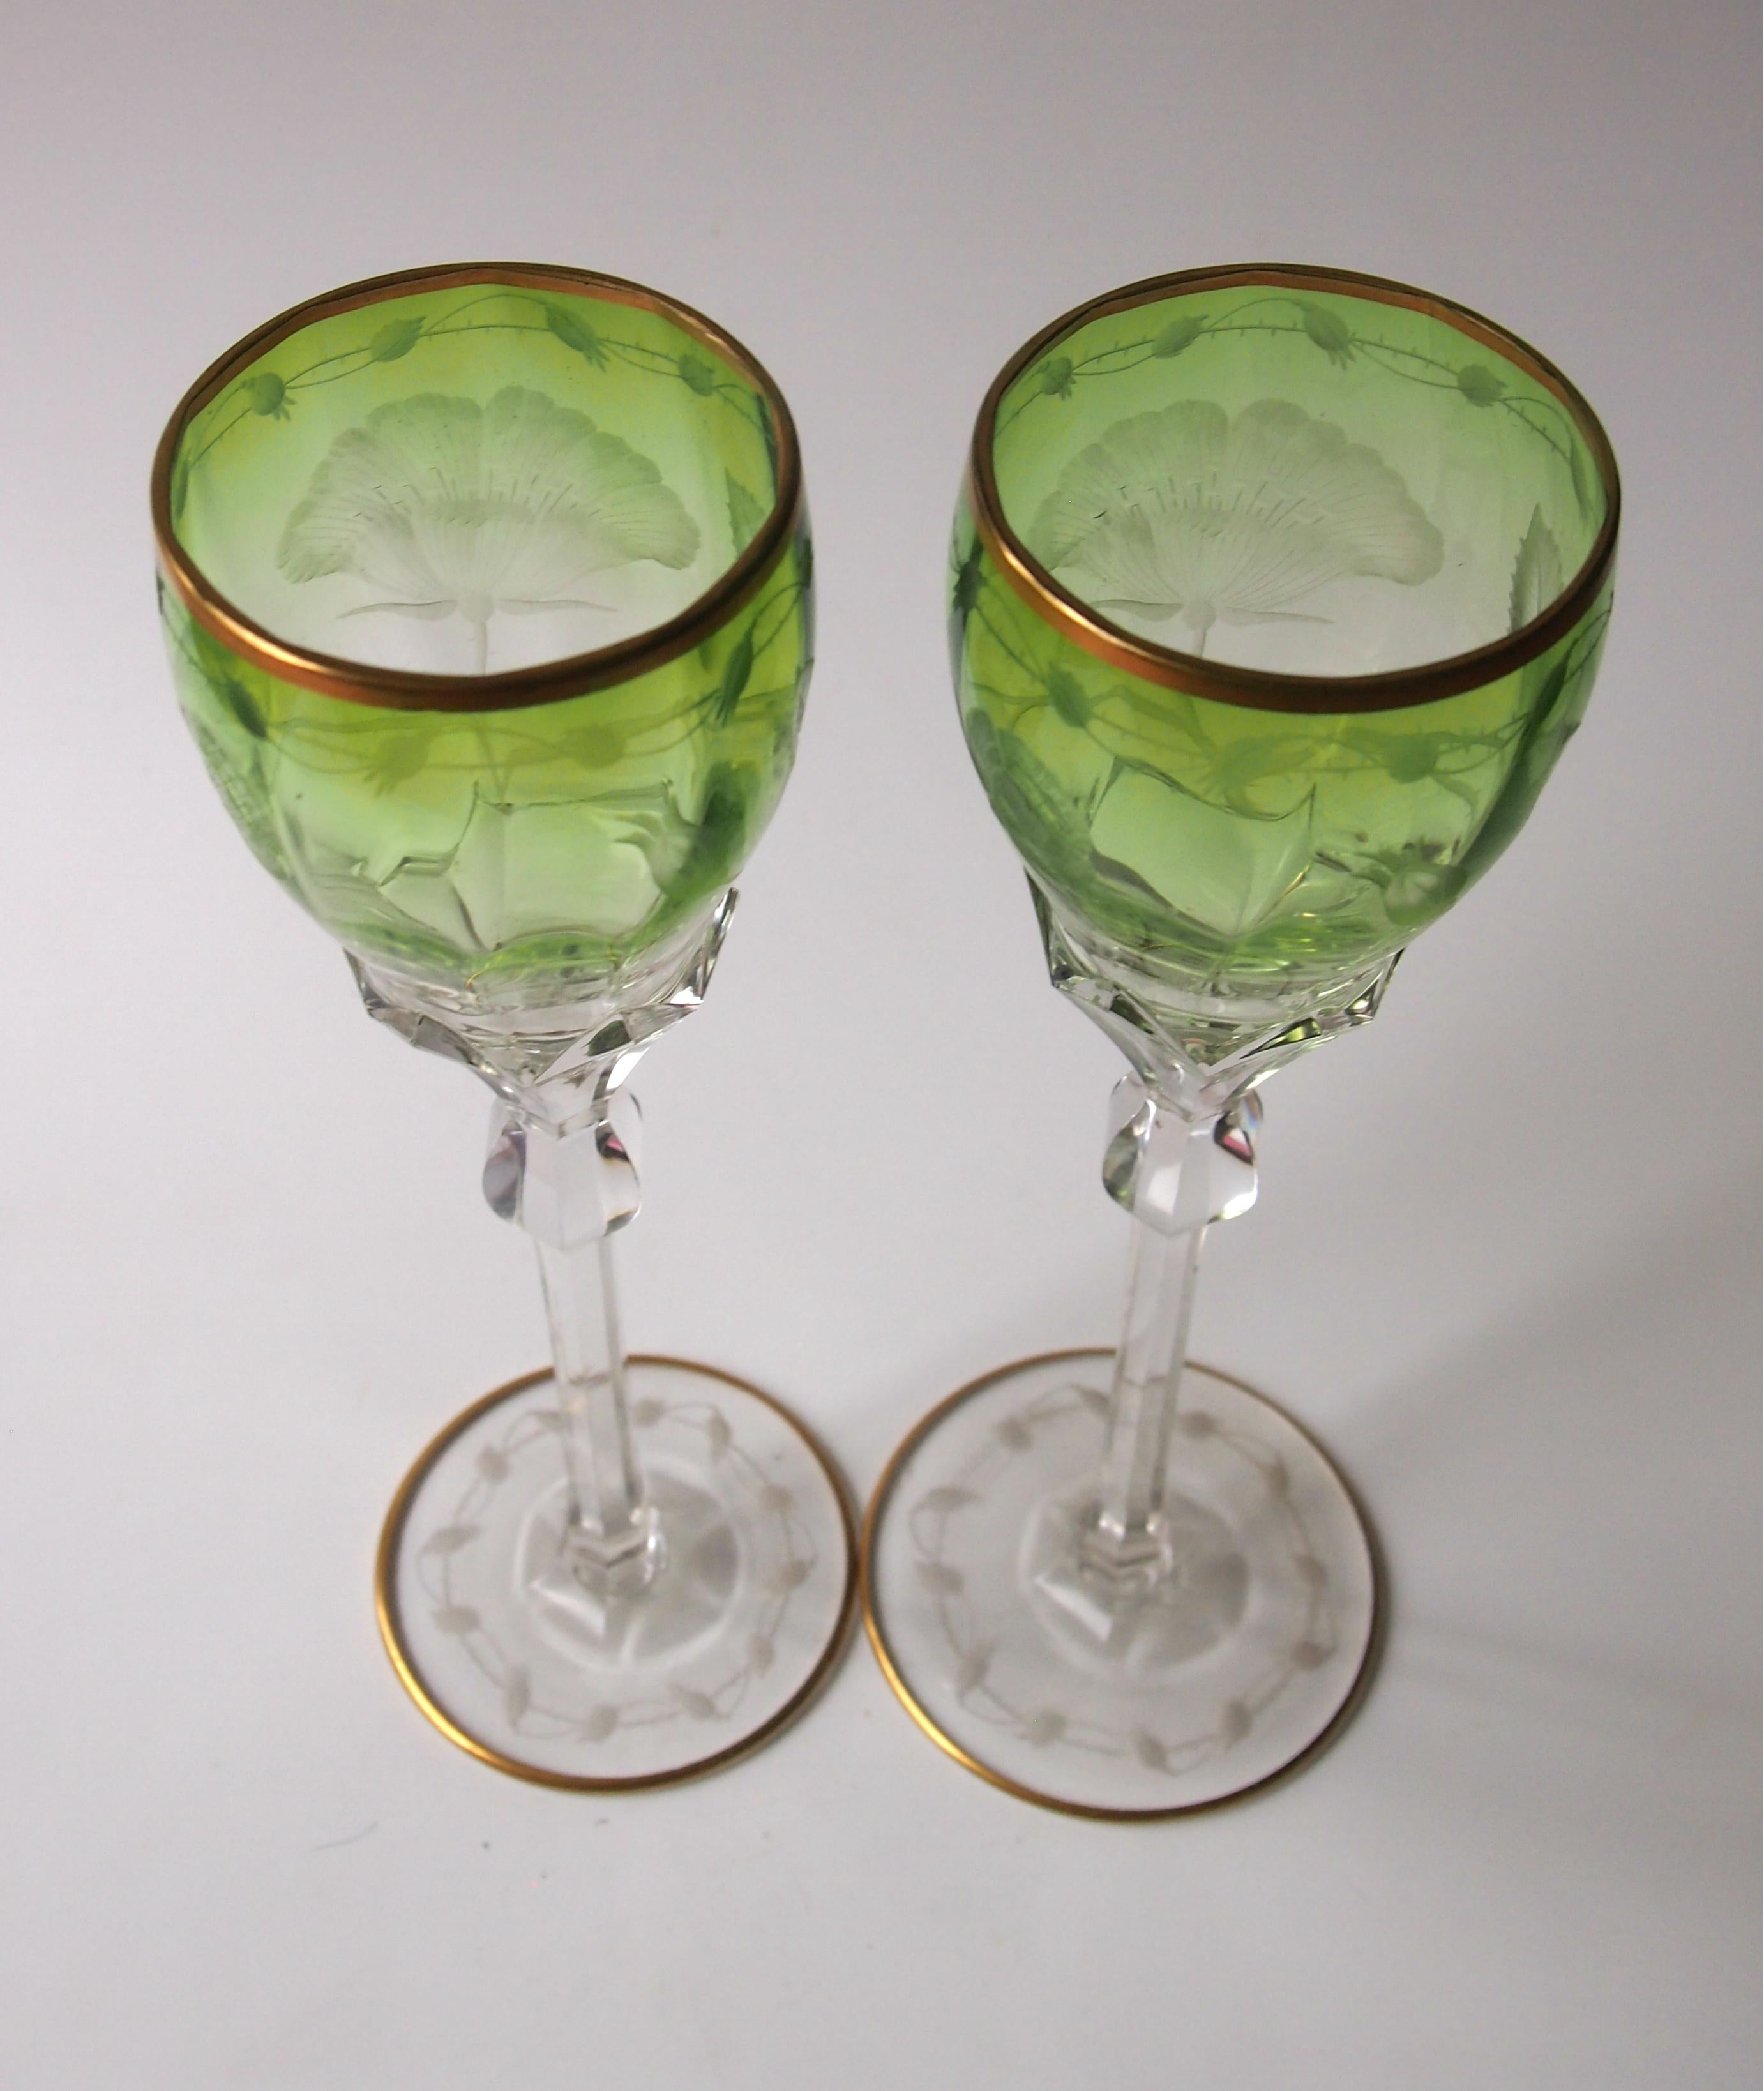 Strikingly Decorative And Unusual Harlequin Cut Crystal Wine Glass Signed Moser Pottery & Glass